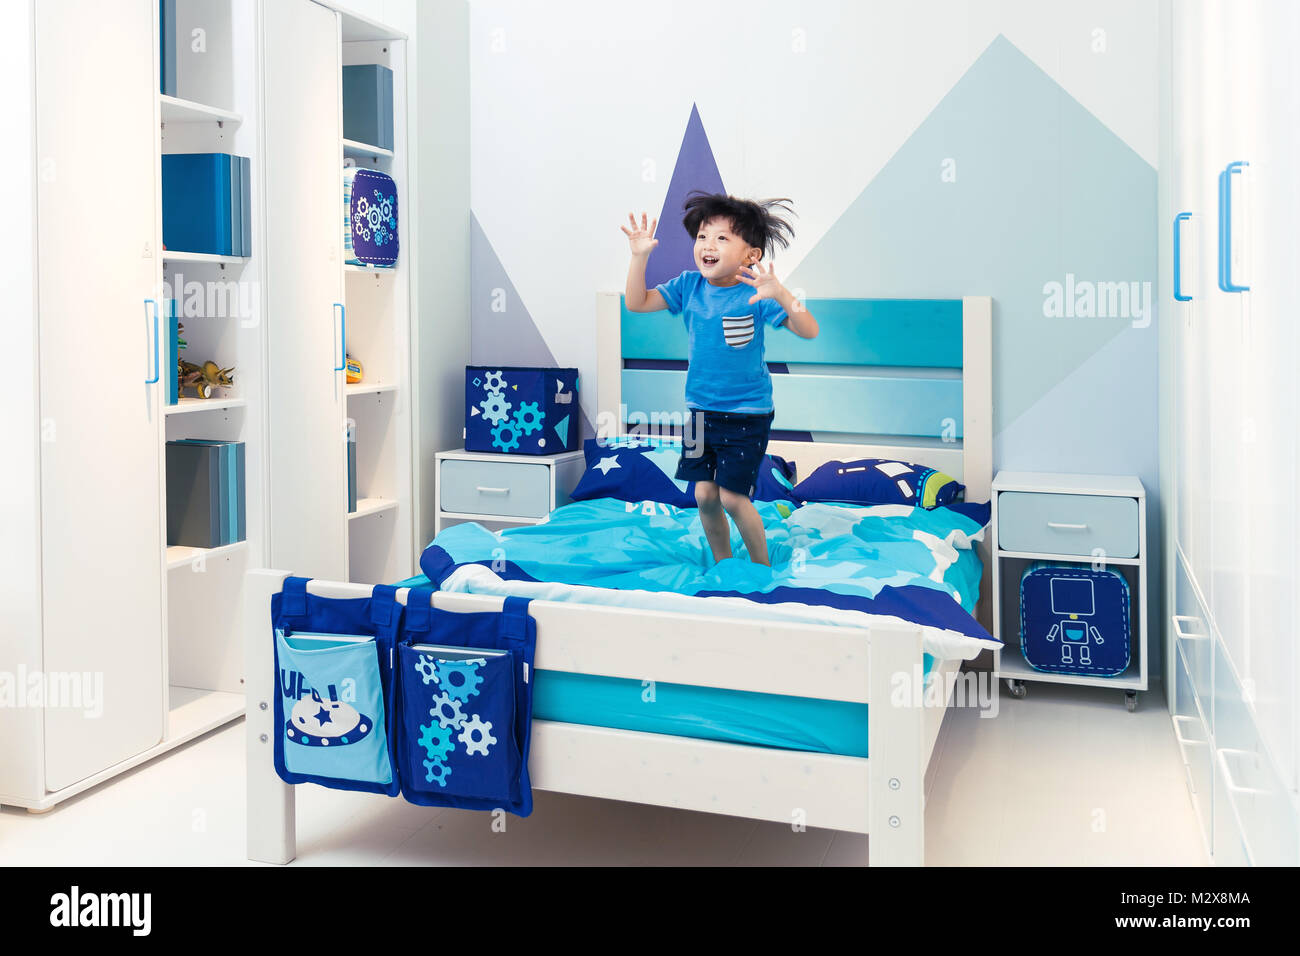 Lovely little boy playing on the bed - Stock Image